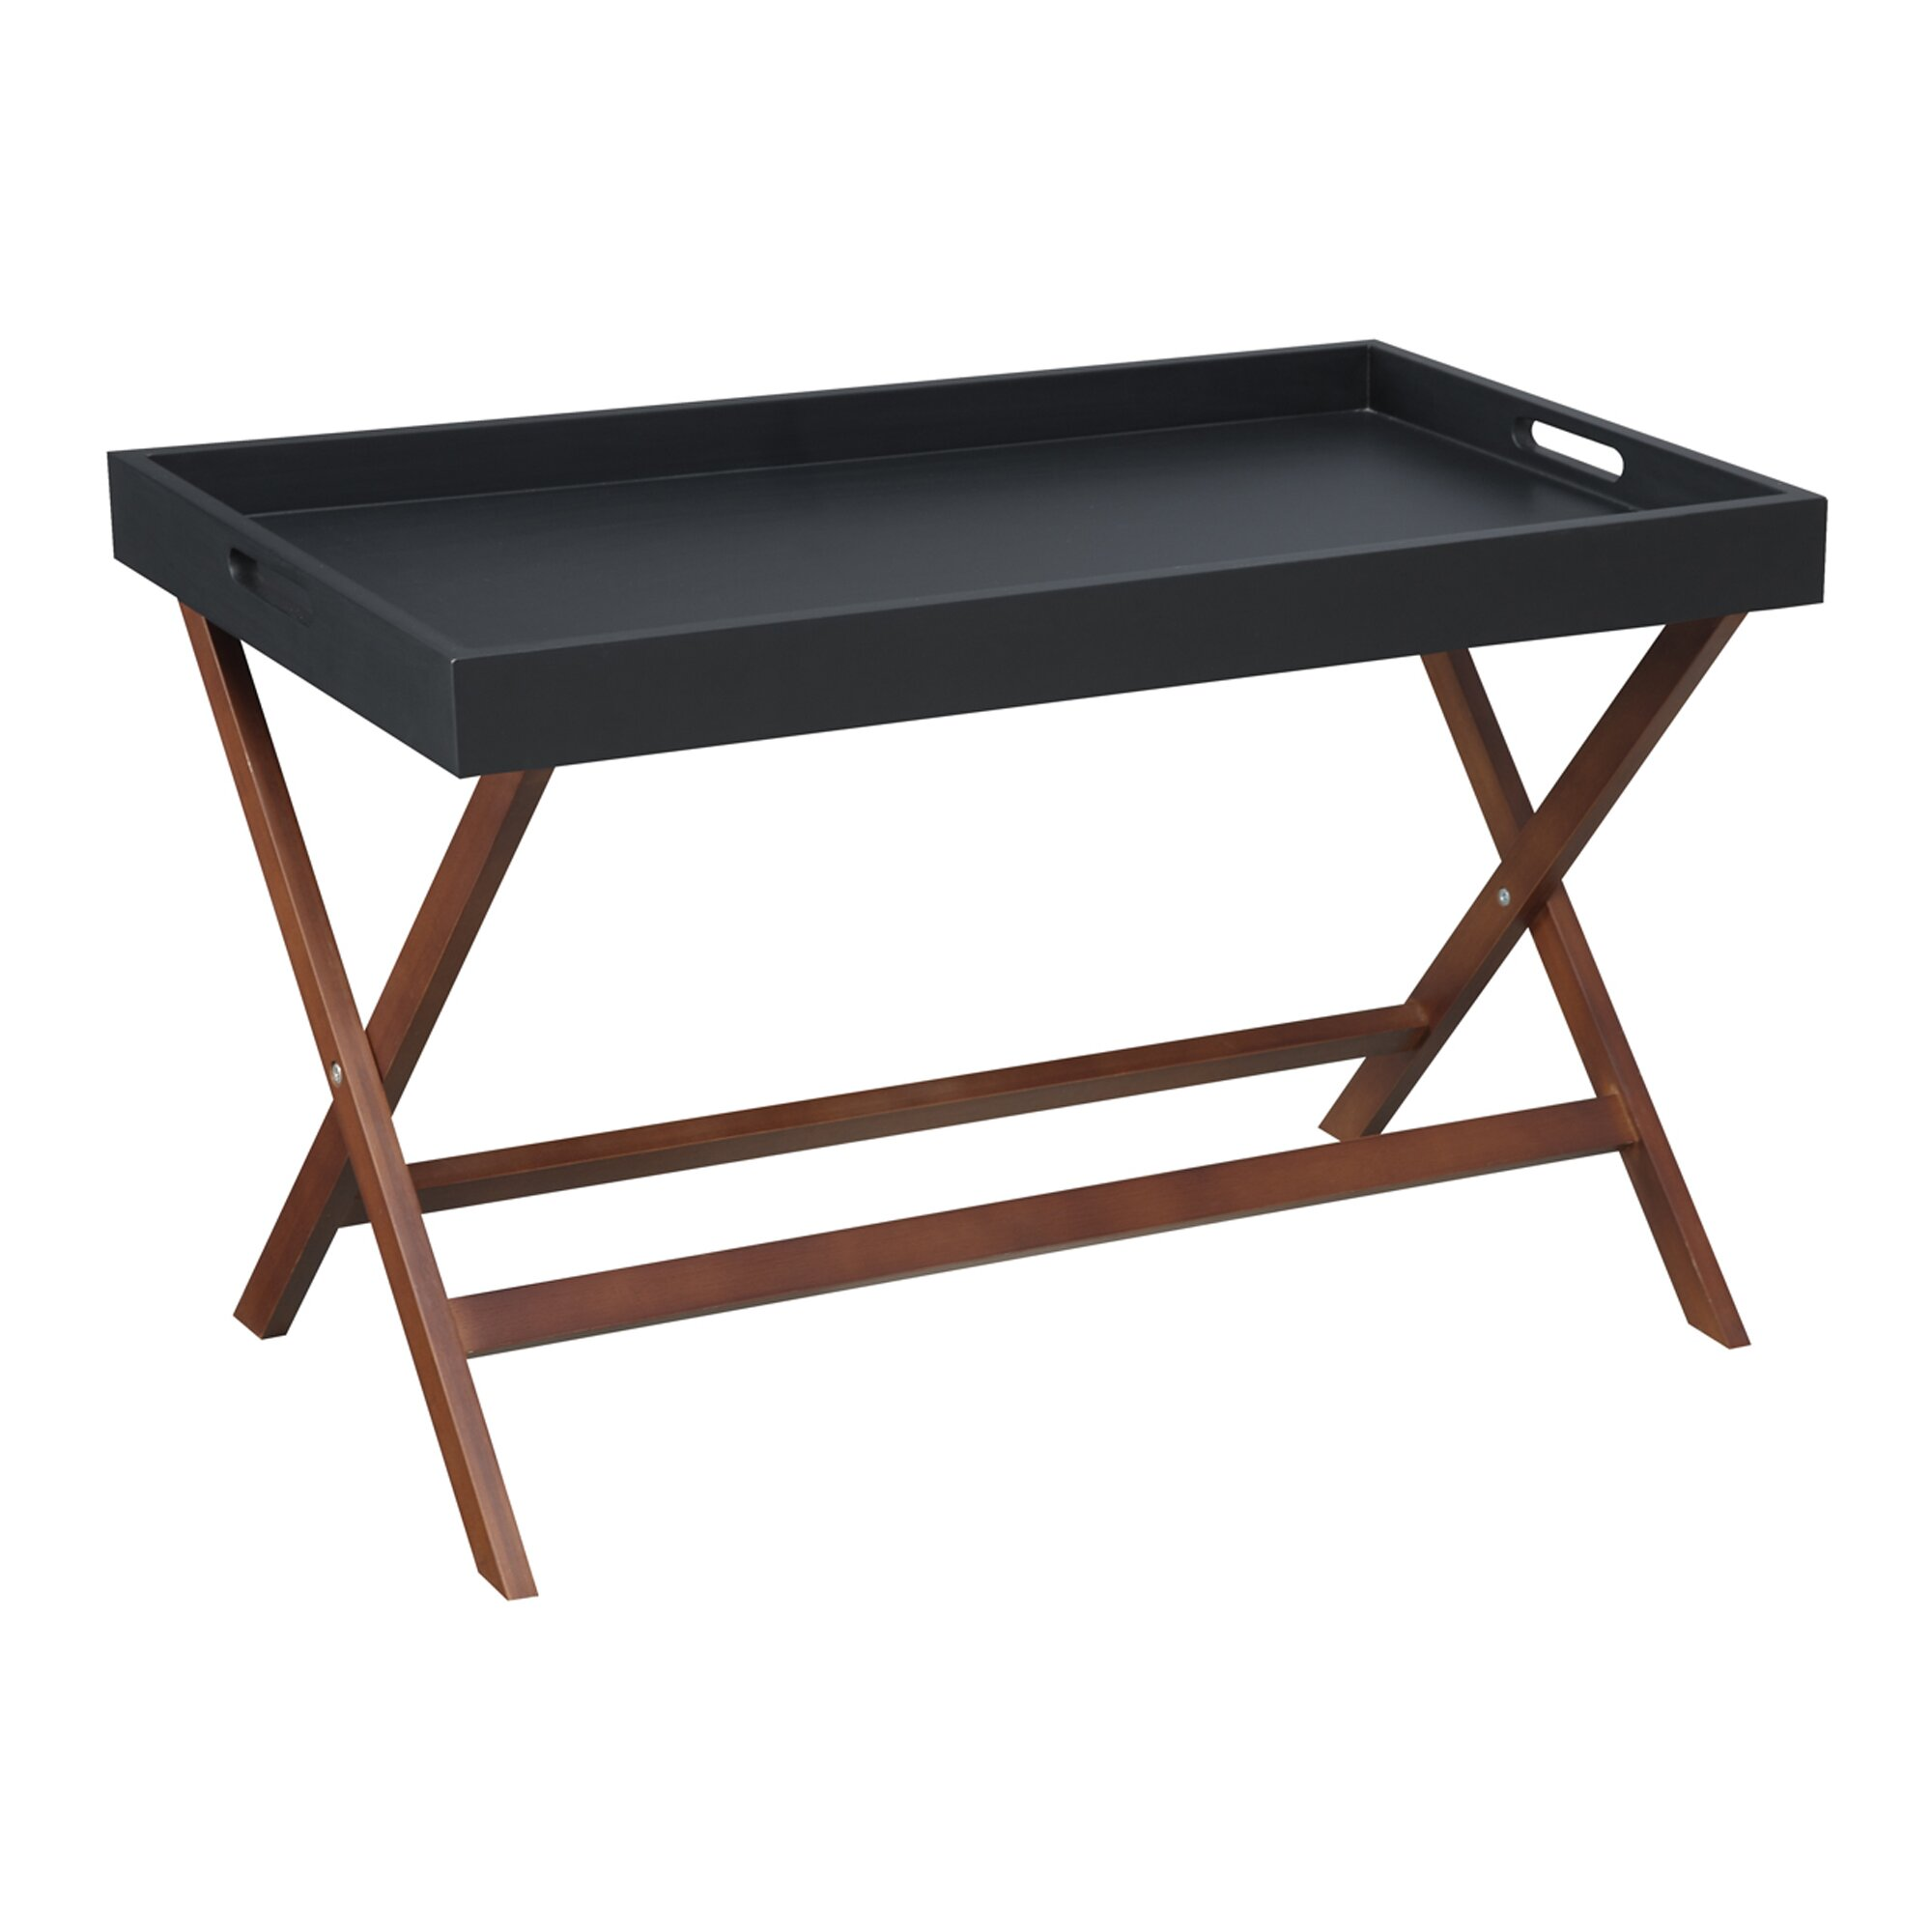 Anthropologie Coffee Table Tray: Andover Mills Lockheart Coffee Table With Removable Tray